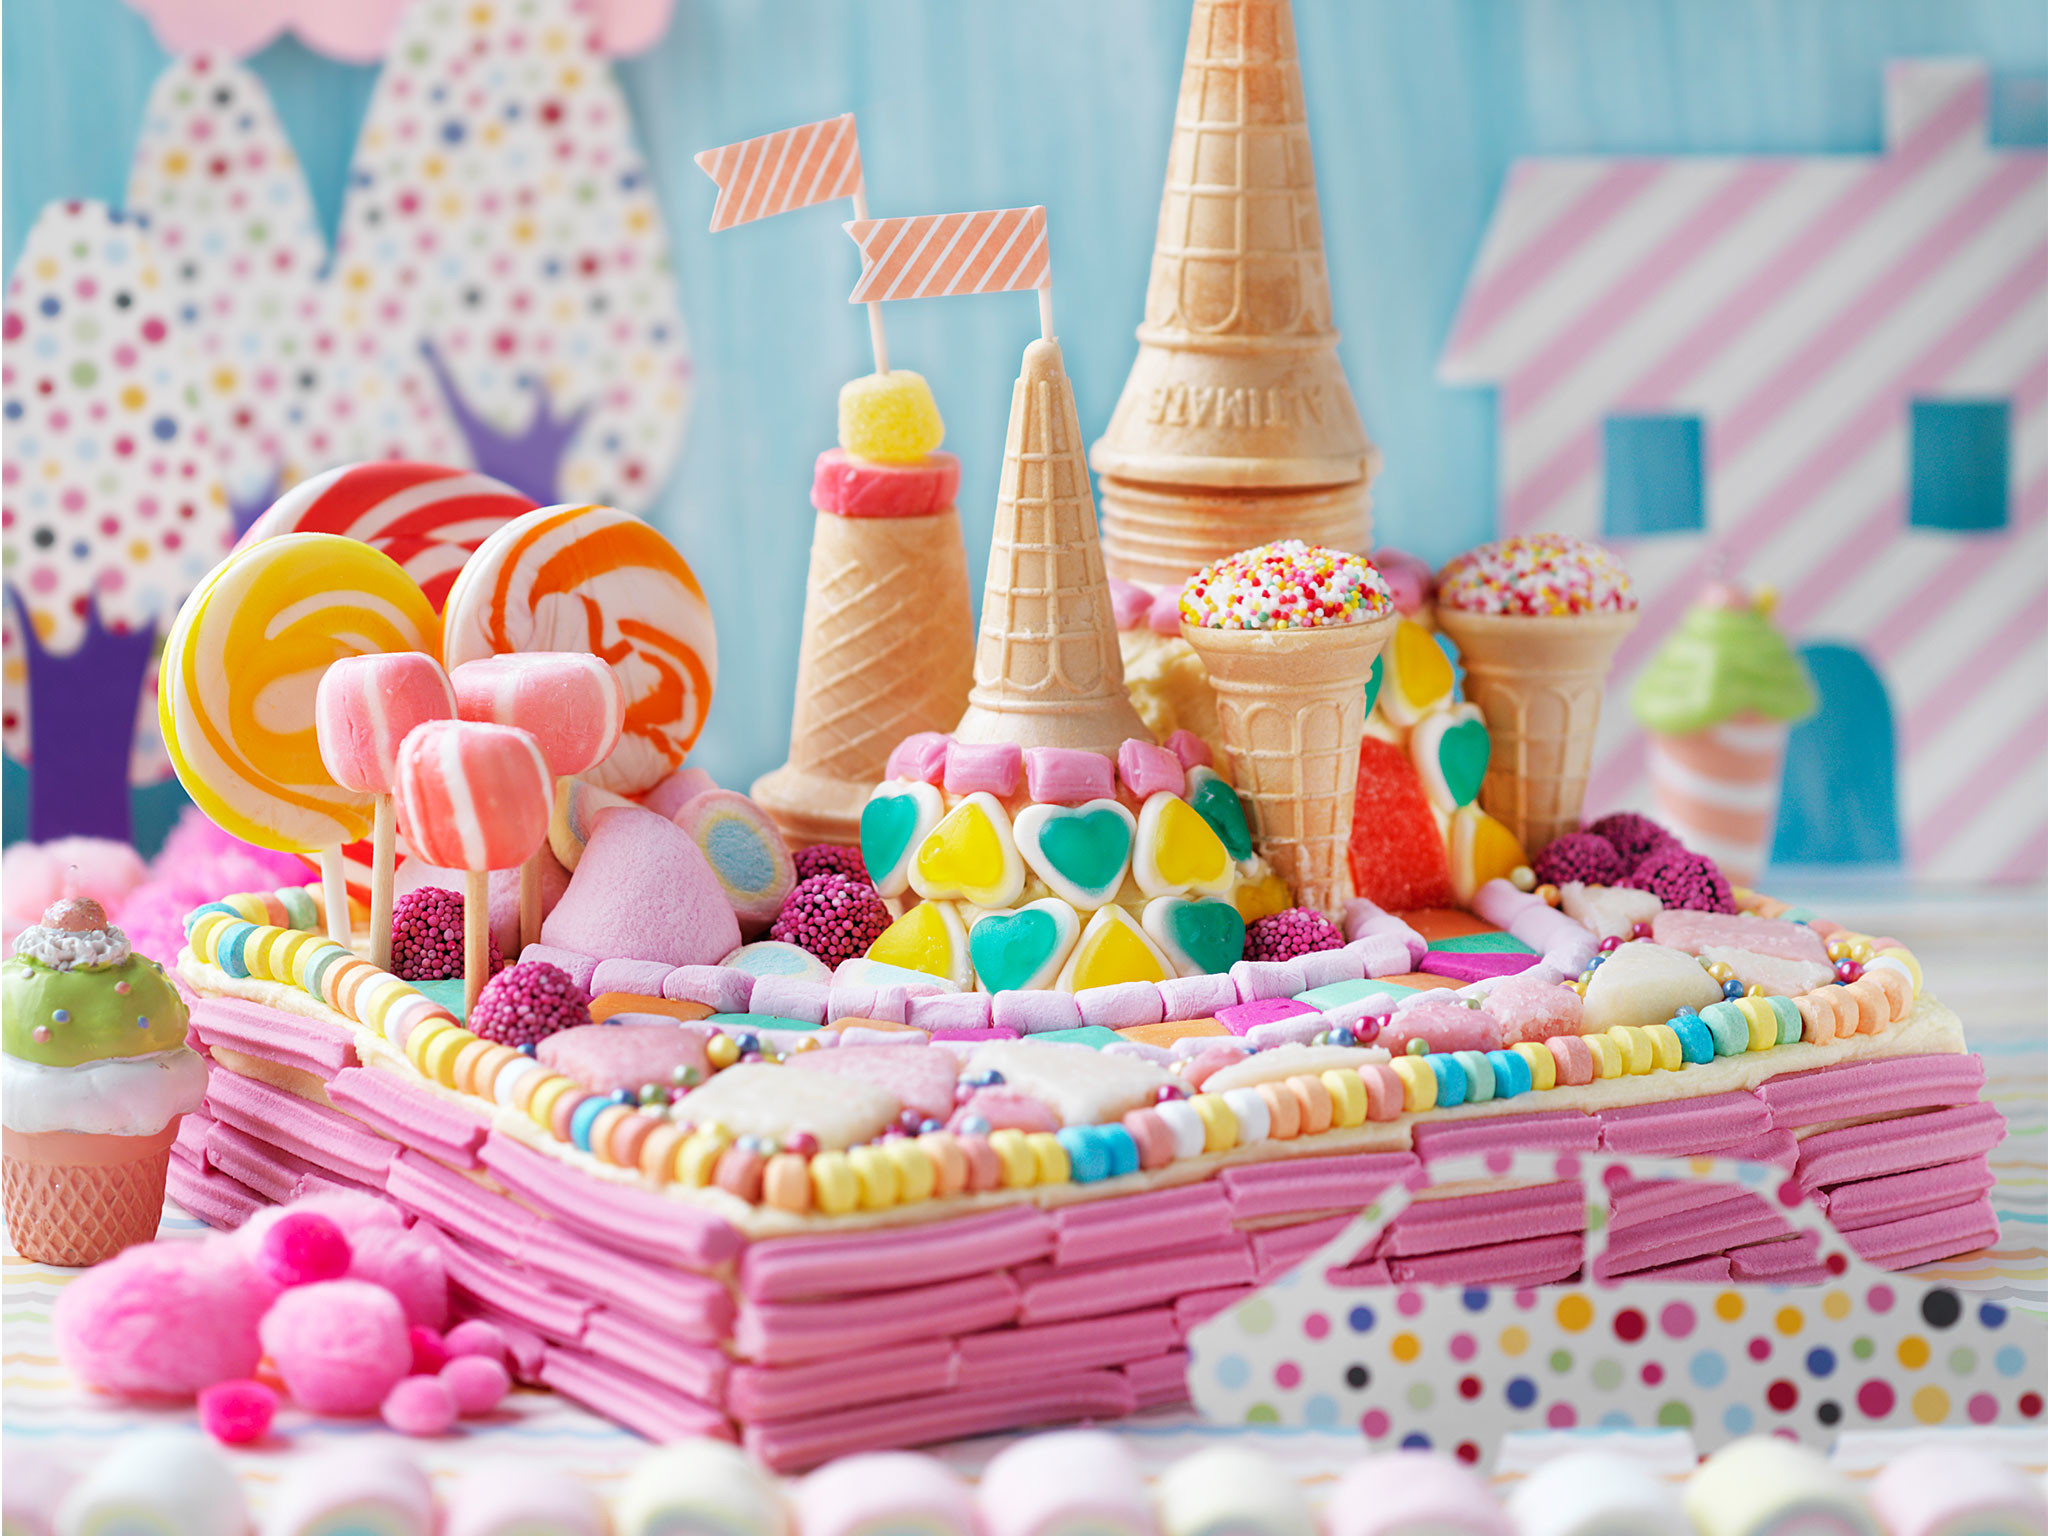 Candyland Wallpaper HD Wallpapers Download Free Images Wallpaper [1000image.com]